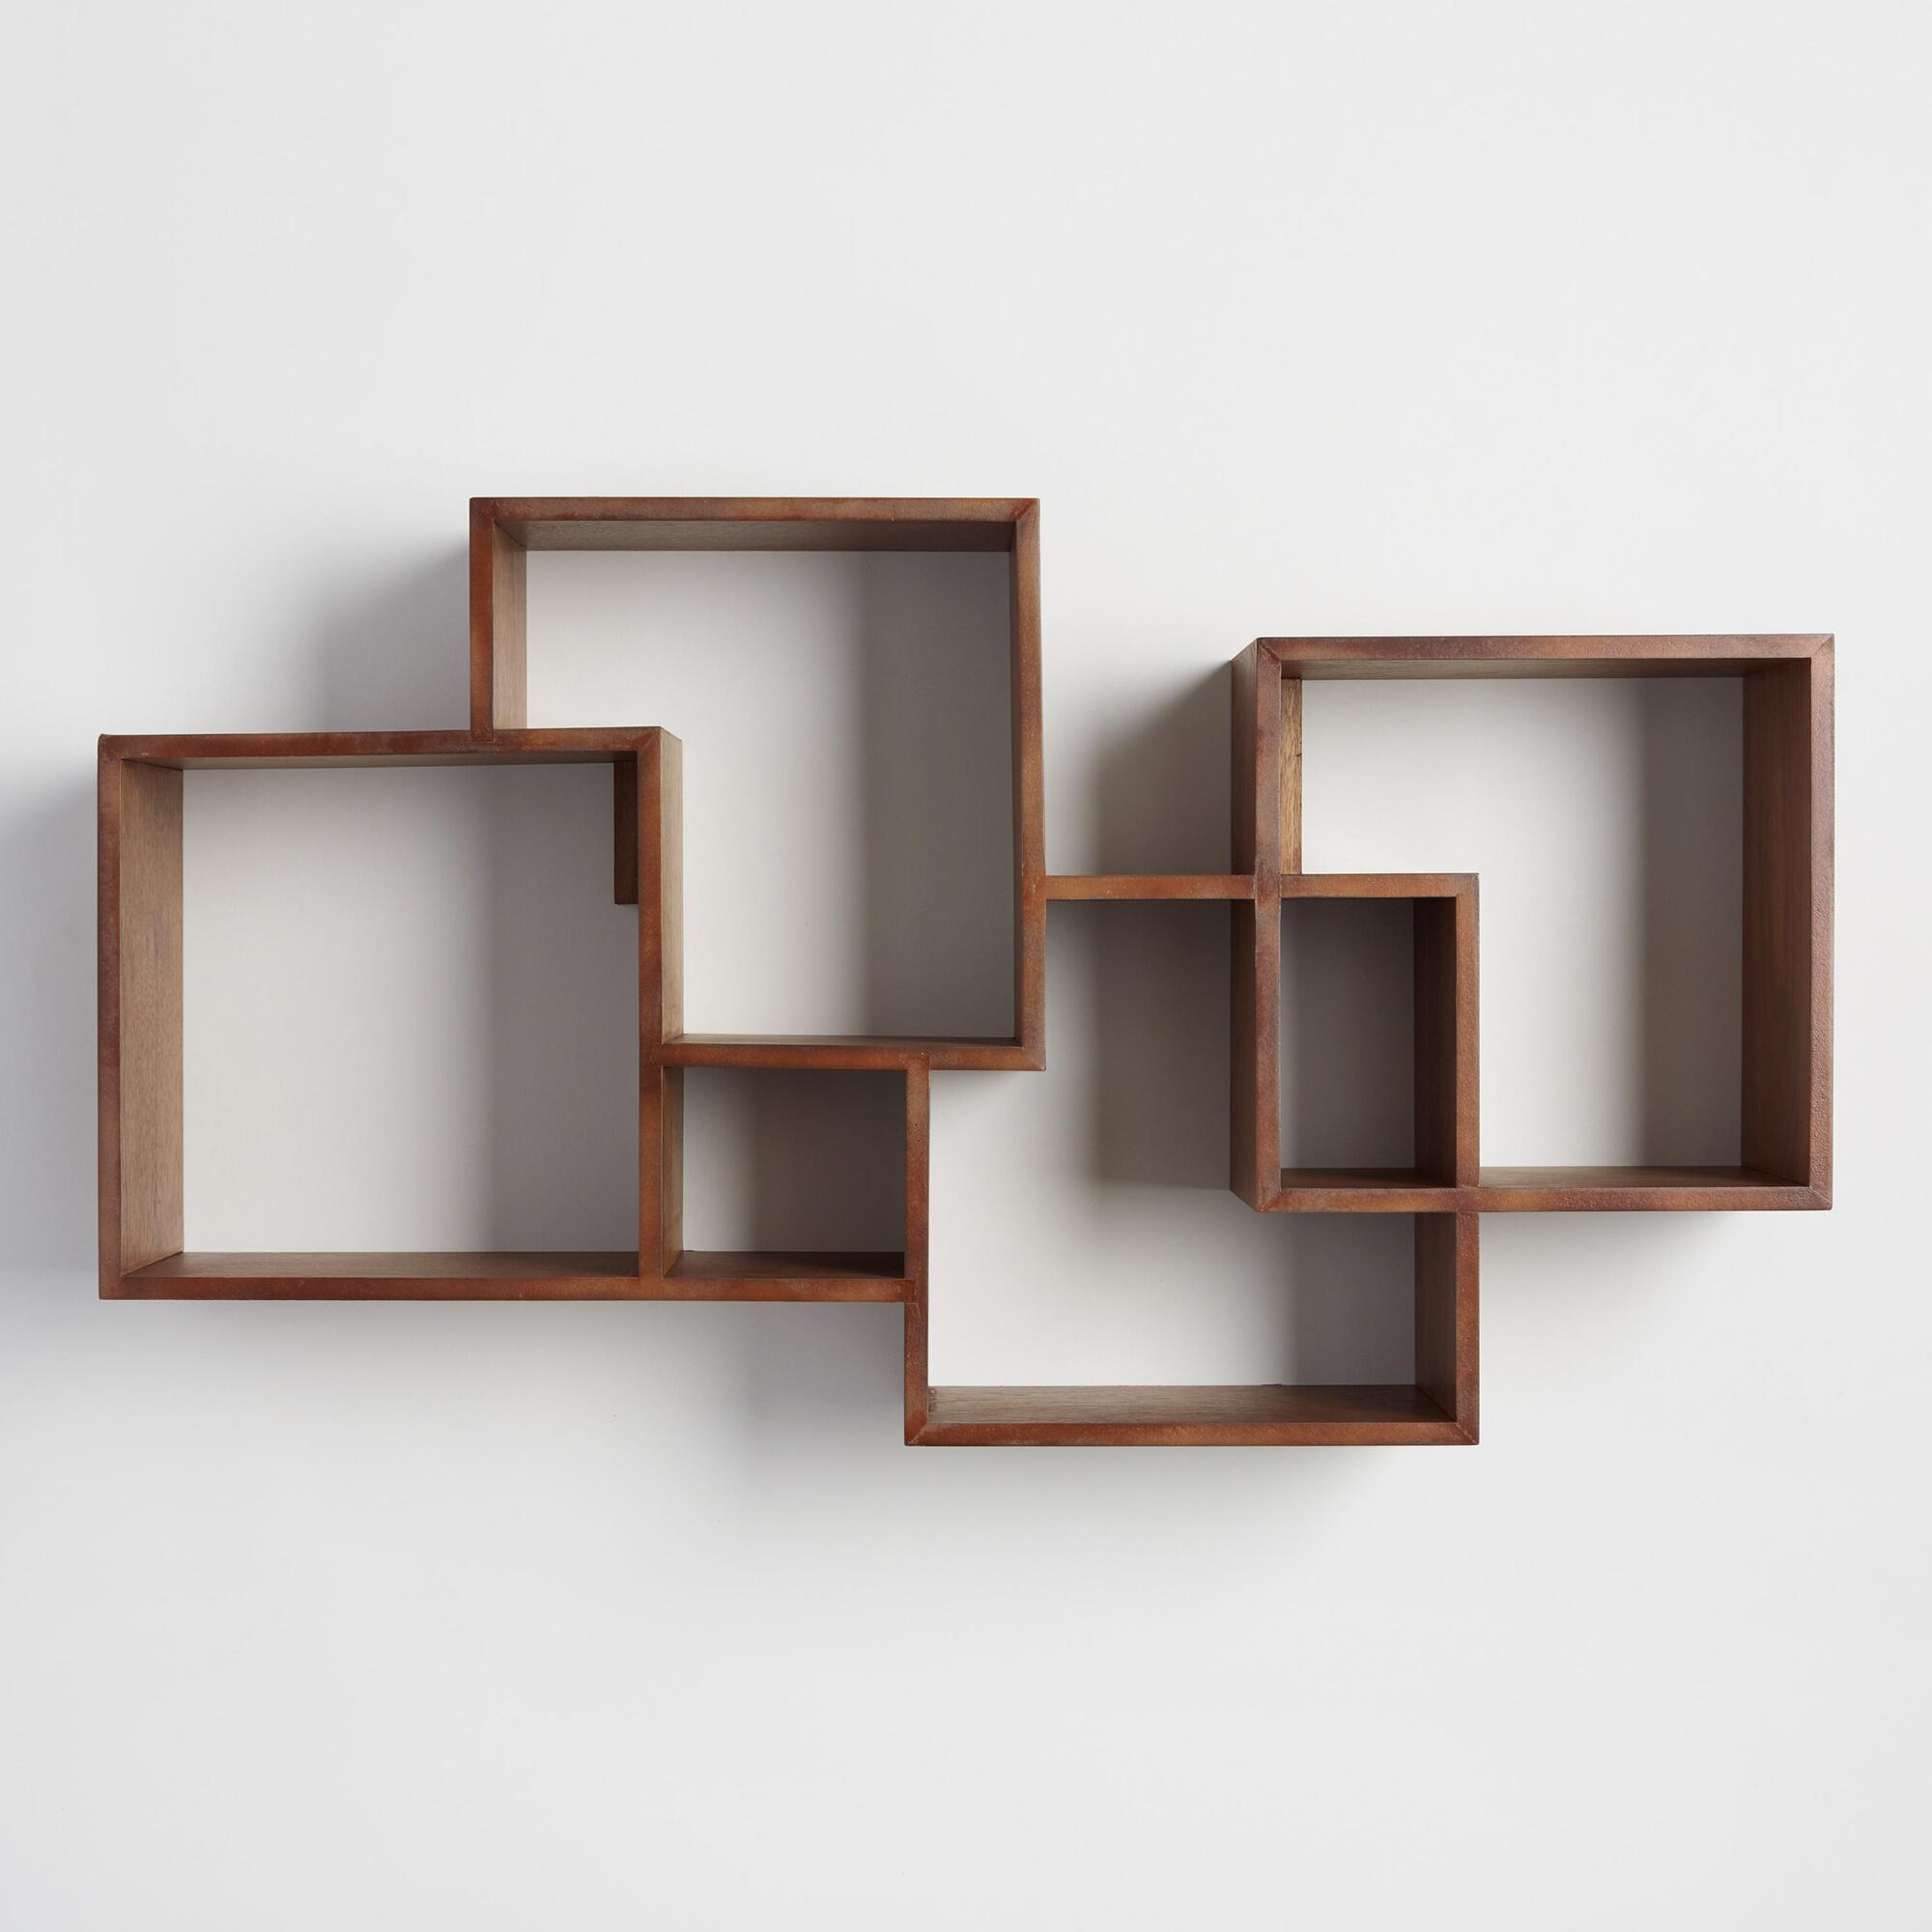 Featuring four cubbies and two smaller niches this artistic wall mounted wood shelf with rich walnut finish exudes midcentury modern charm and provides a